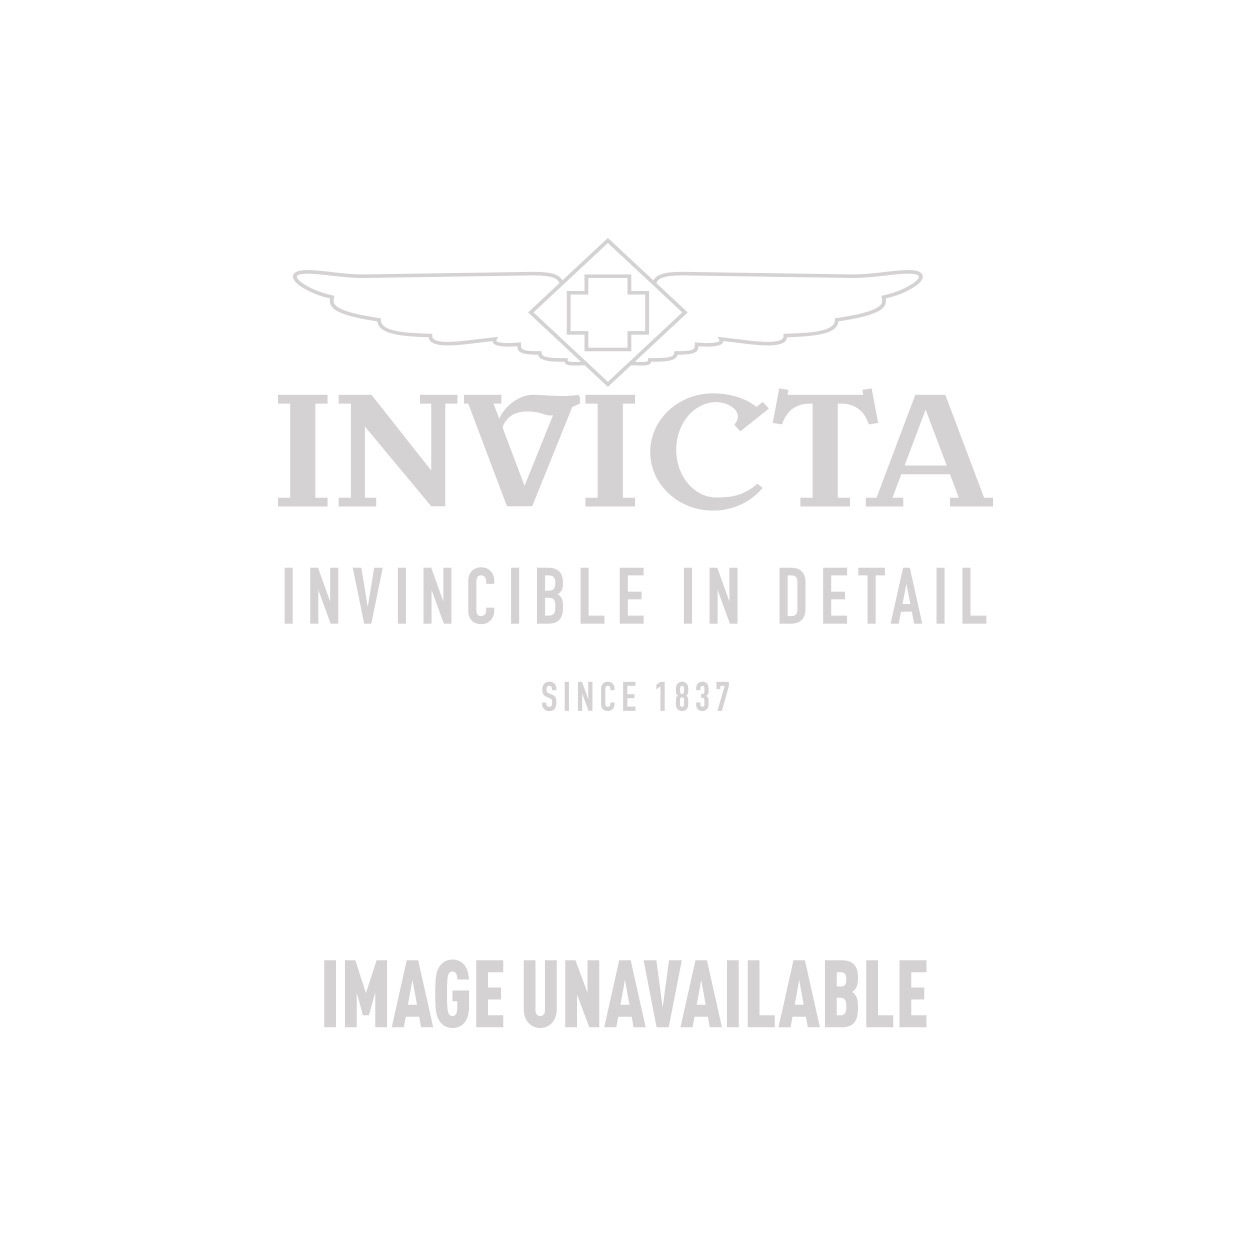 Invicta 21cm Men's Bracelets in Rhodium - Model J0009